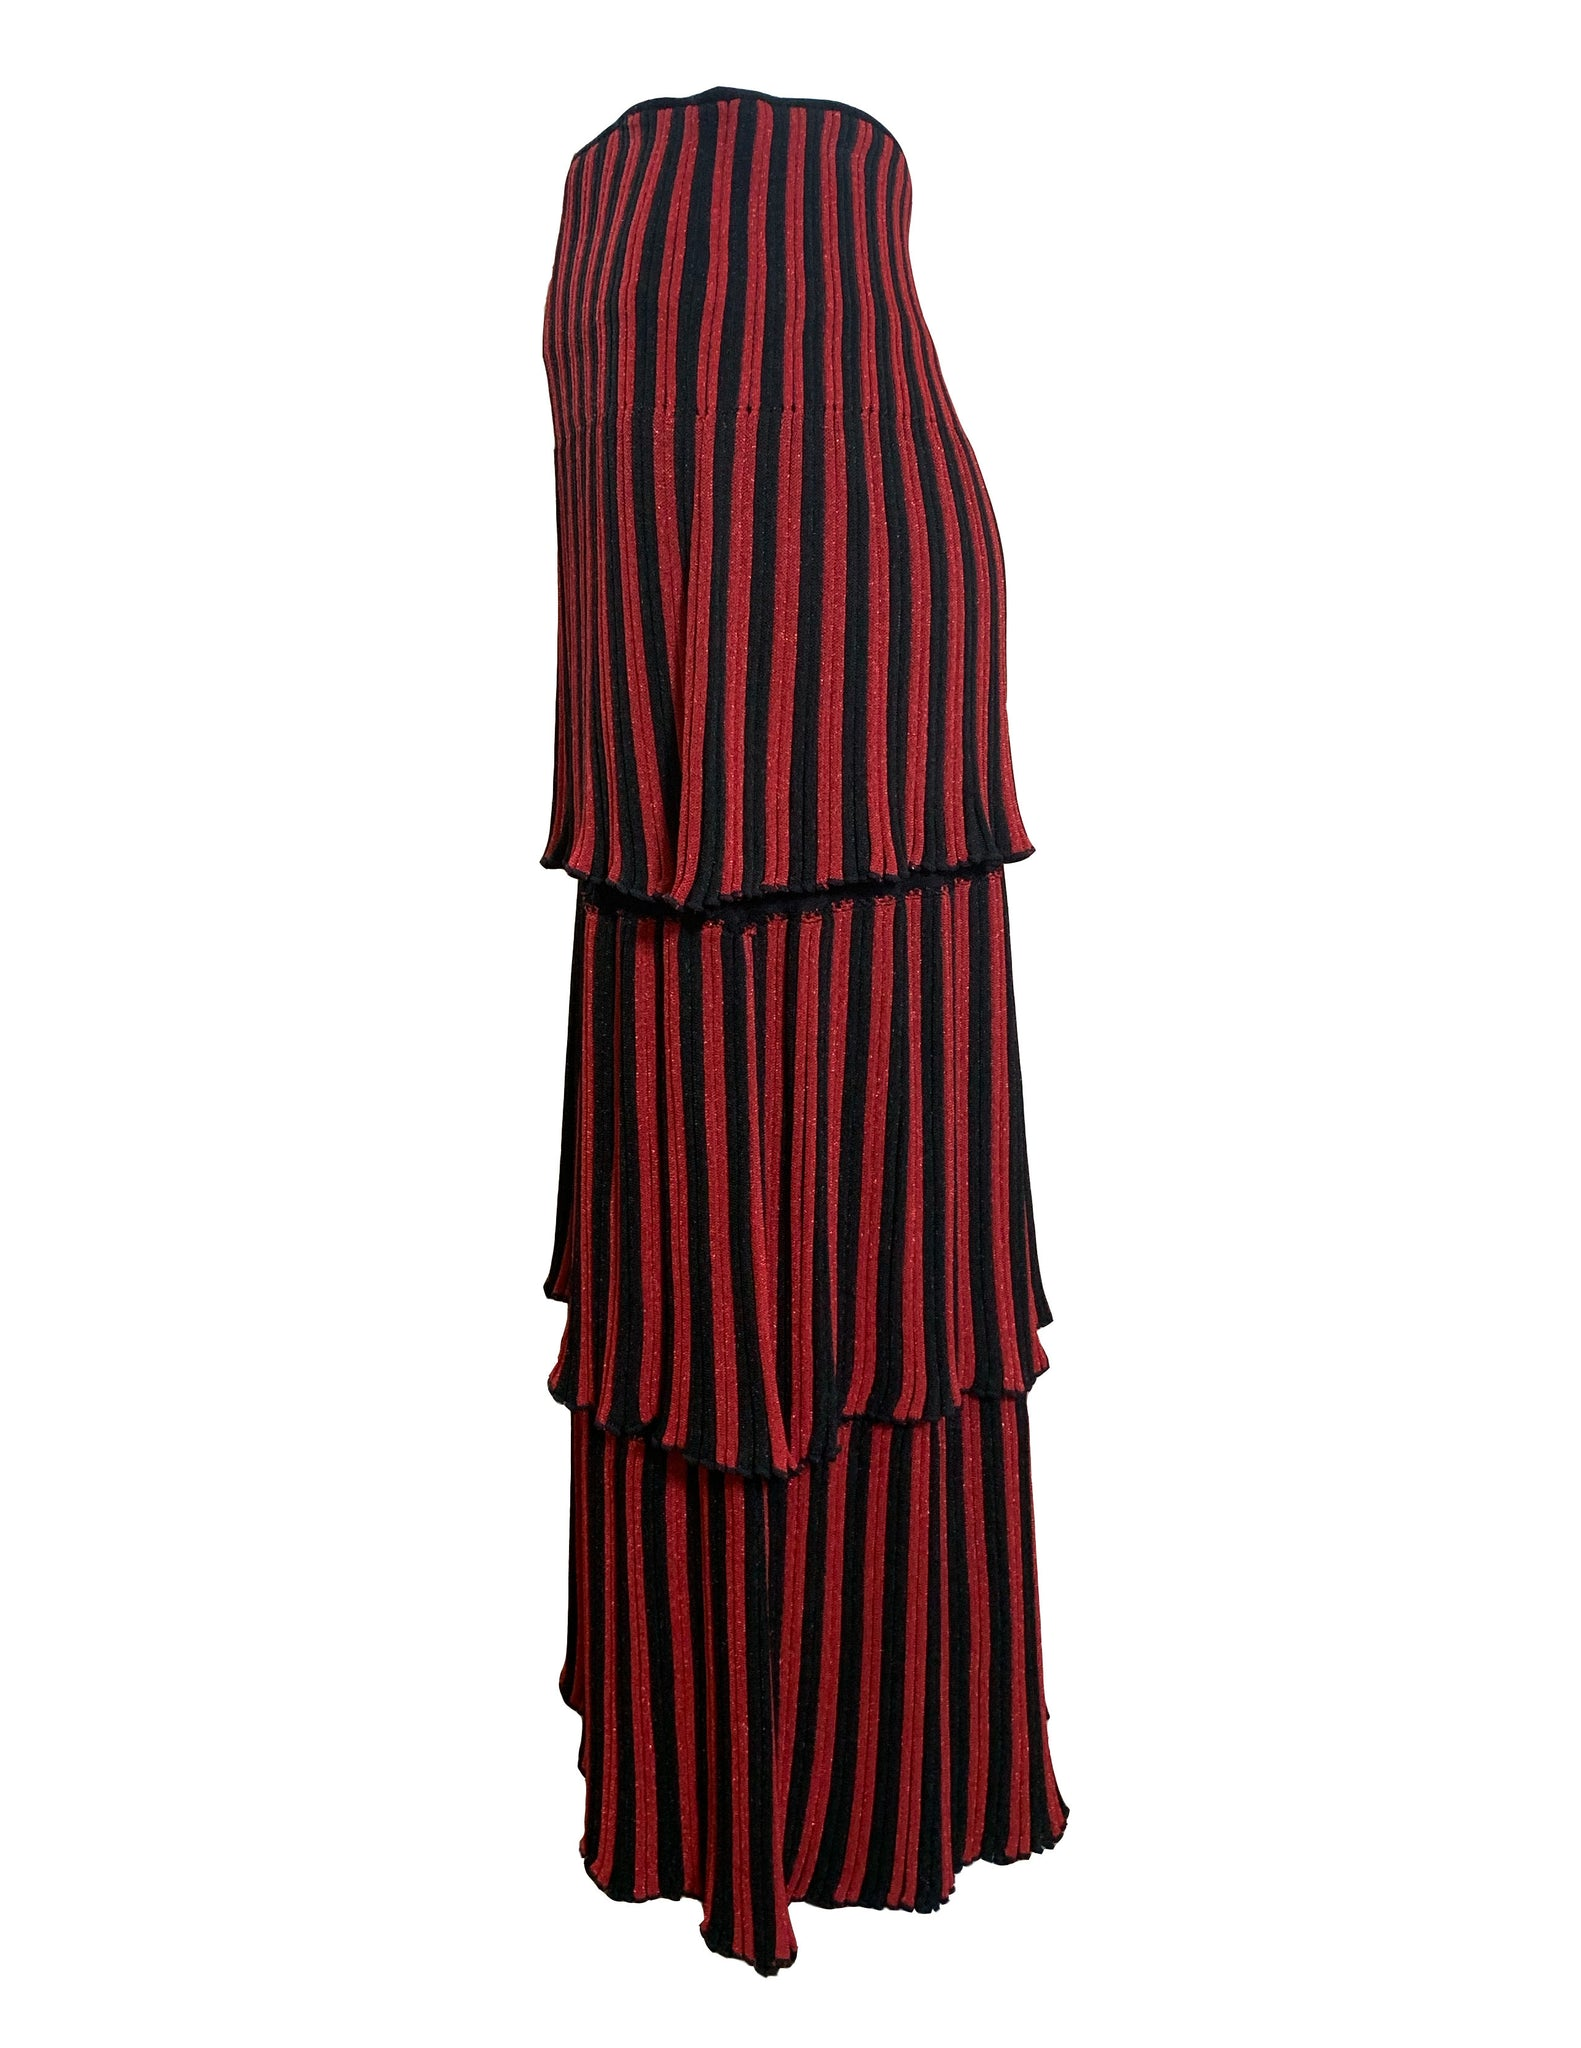 Sonia Rykiel 80s Red and Black Striped Tiered Knit Midi Skirt SIDE 2 of 4